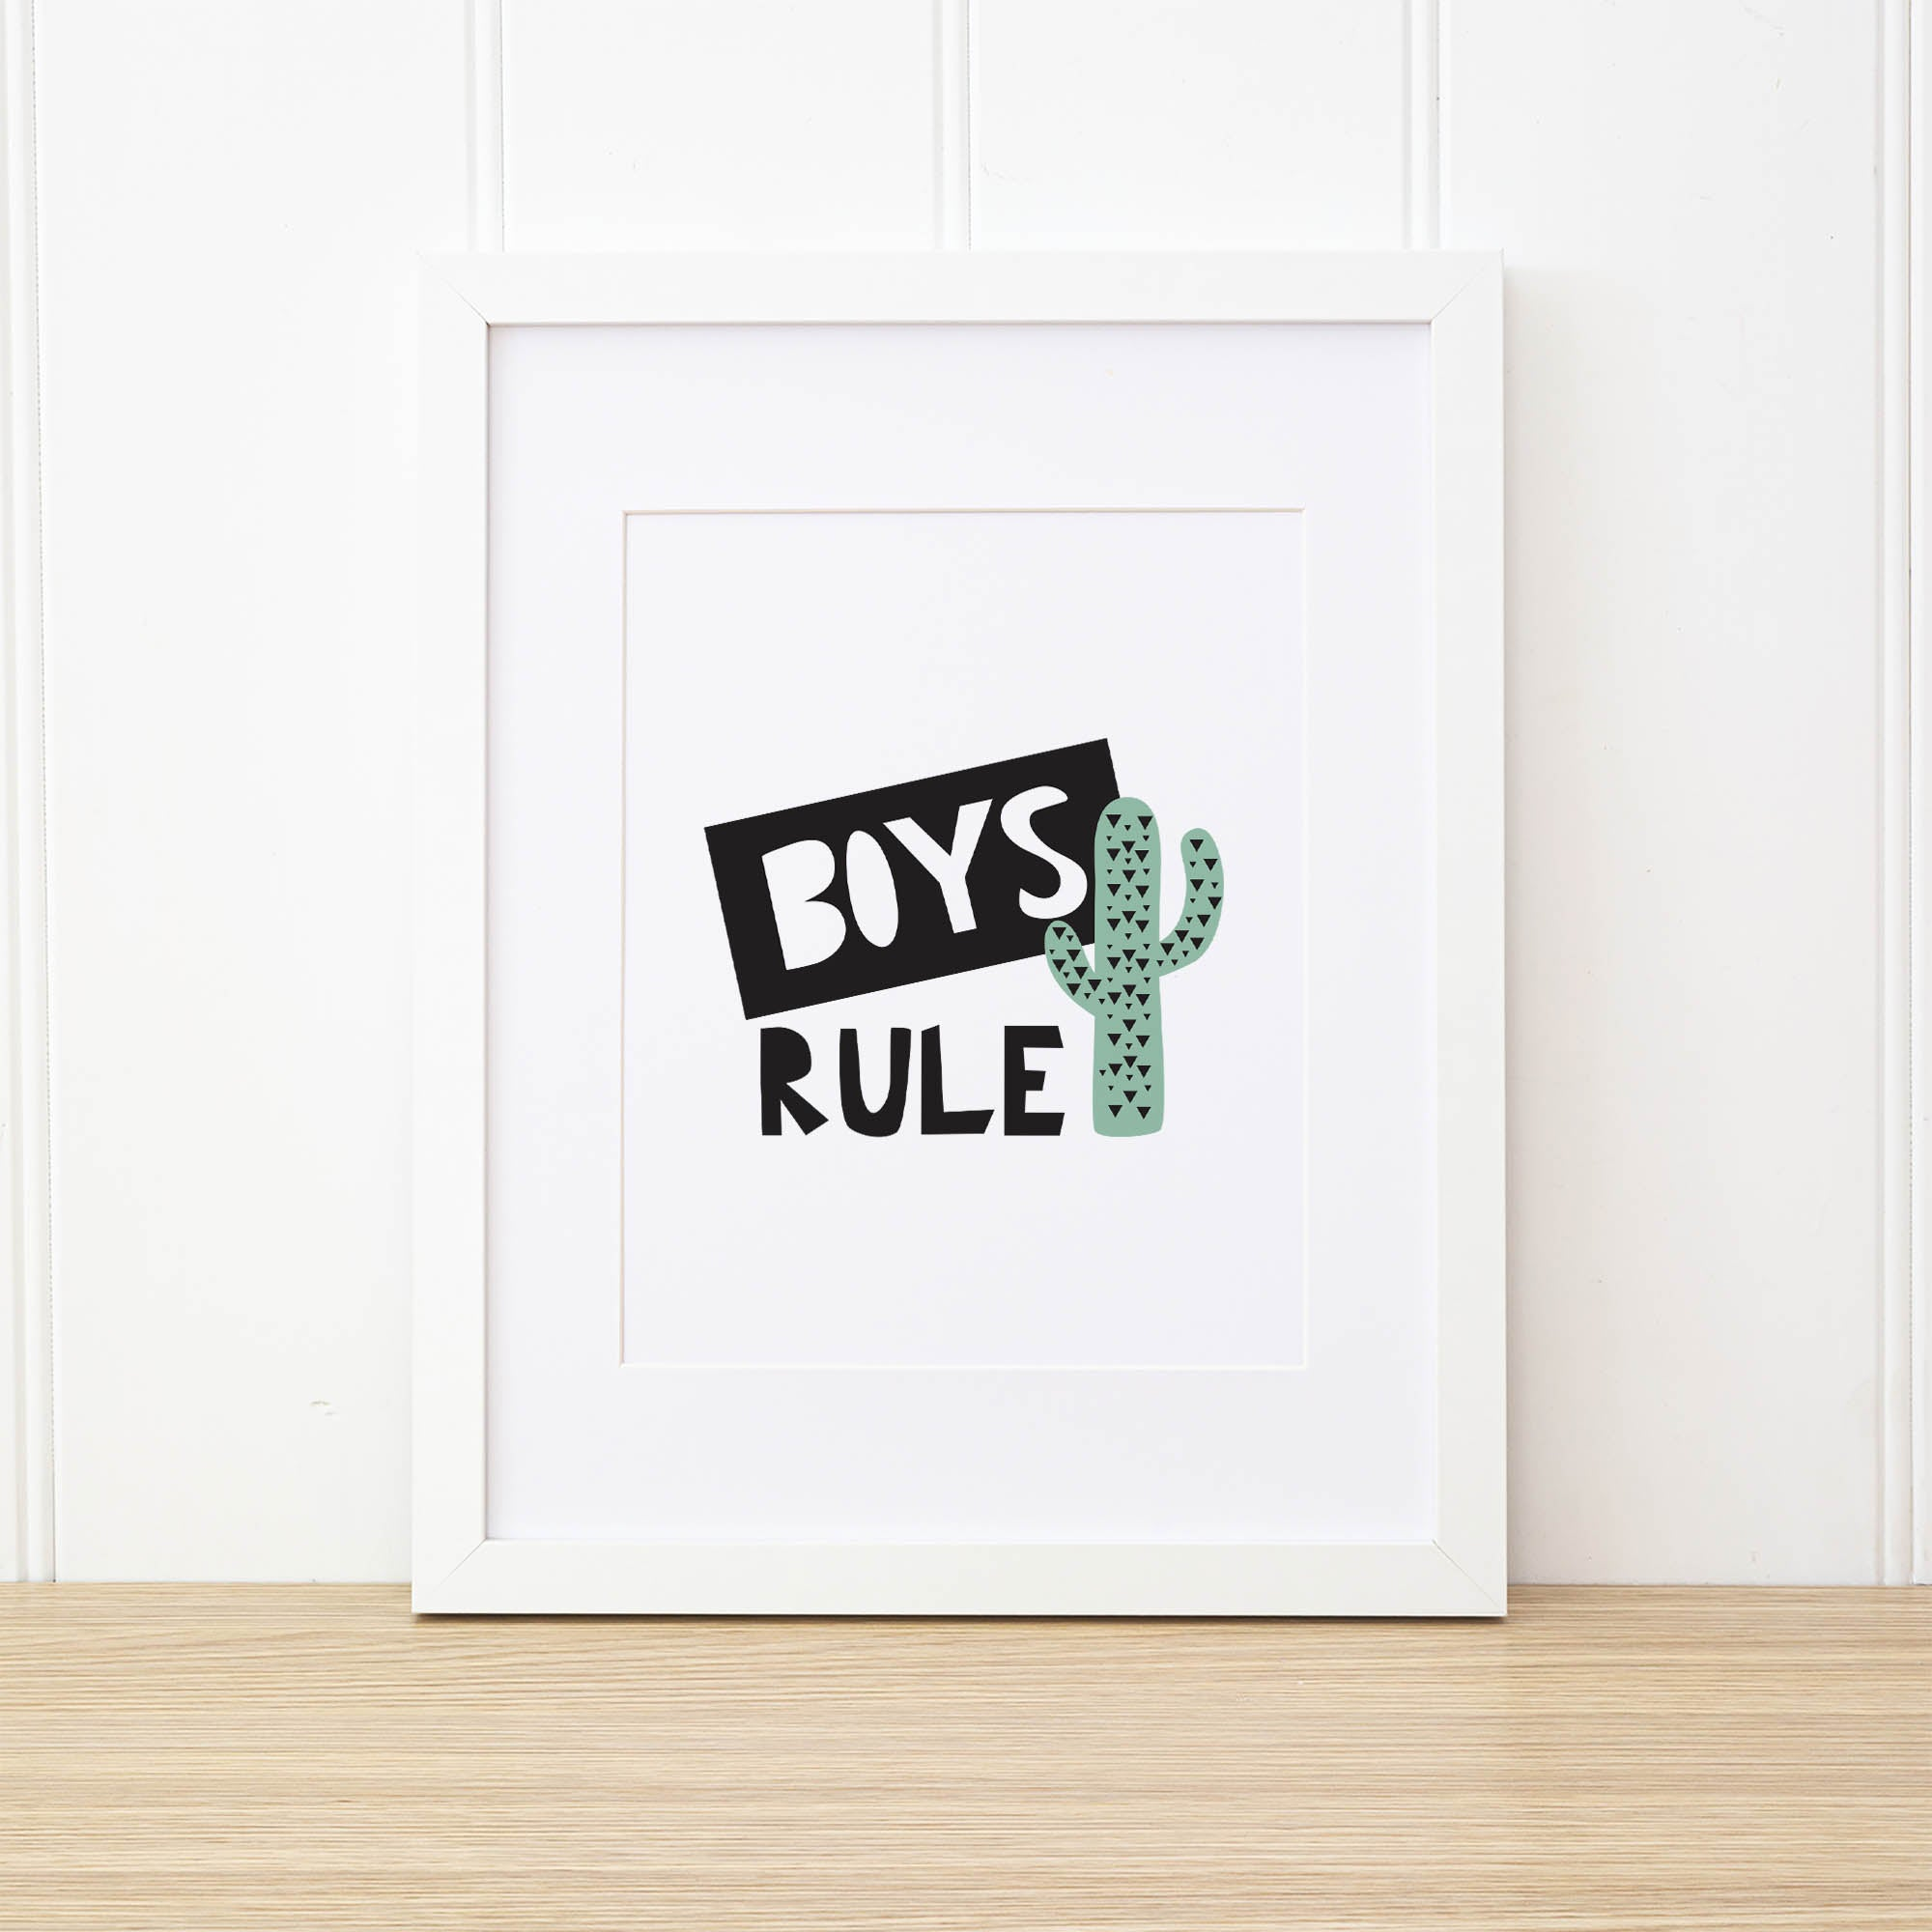 Printable Wall Art - Boys Rule Wall Art Print by mumandmehandmadedesigns- An Australian Online Stationery and Card Shop